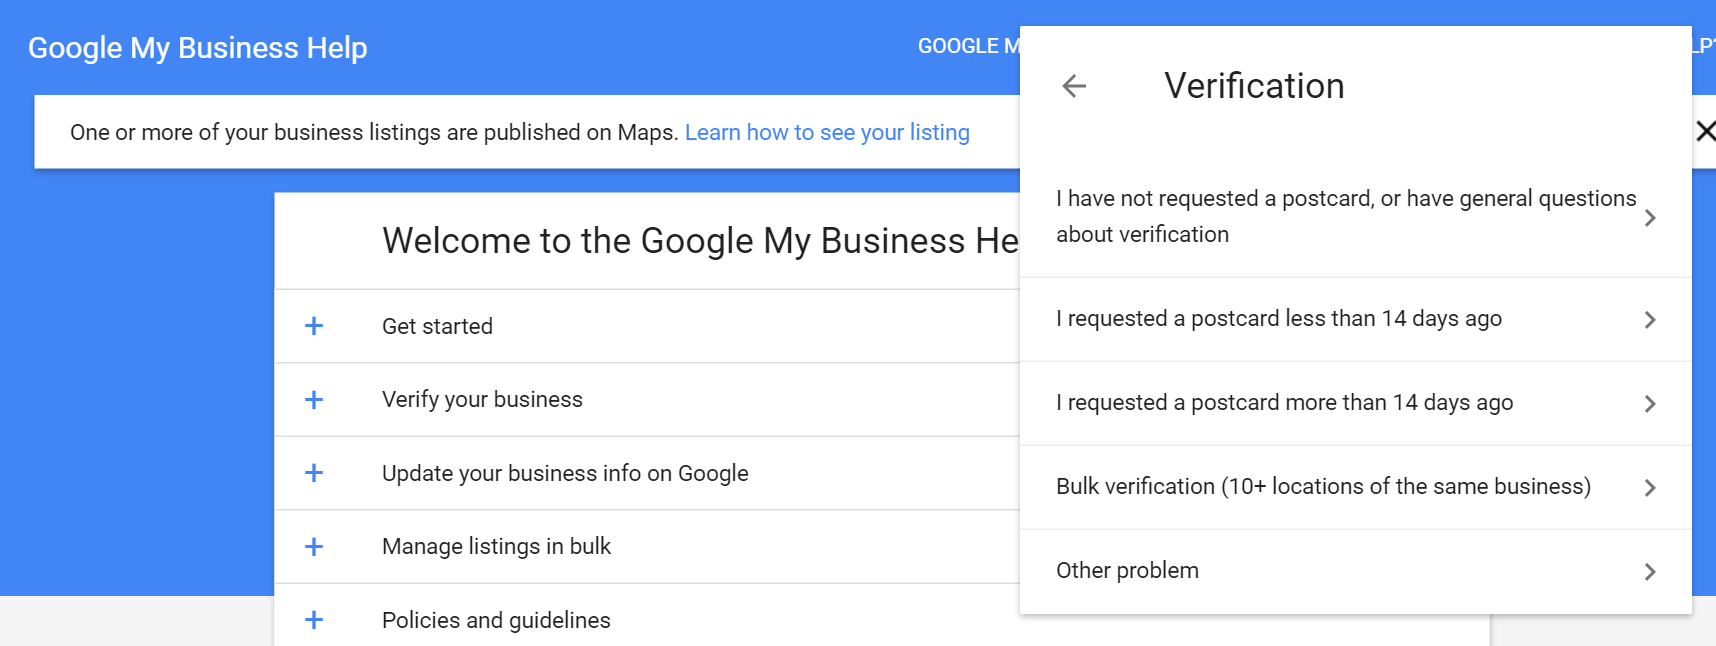 Choose verification issue for Google My Business